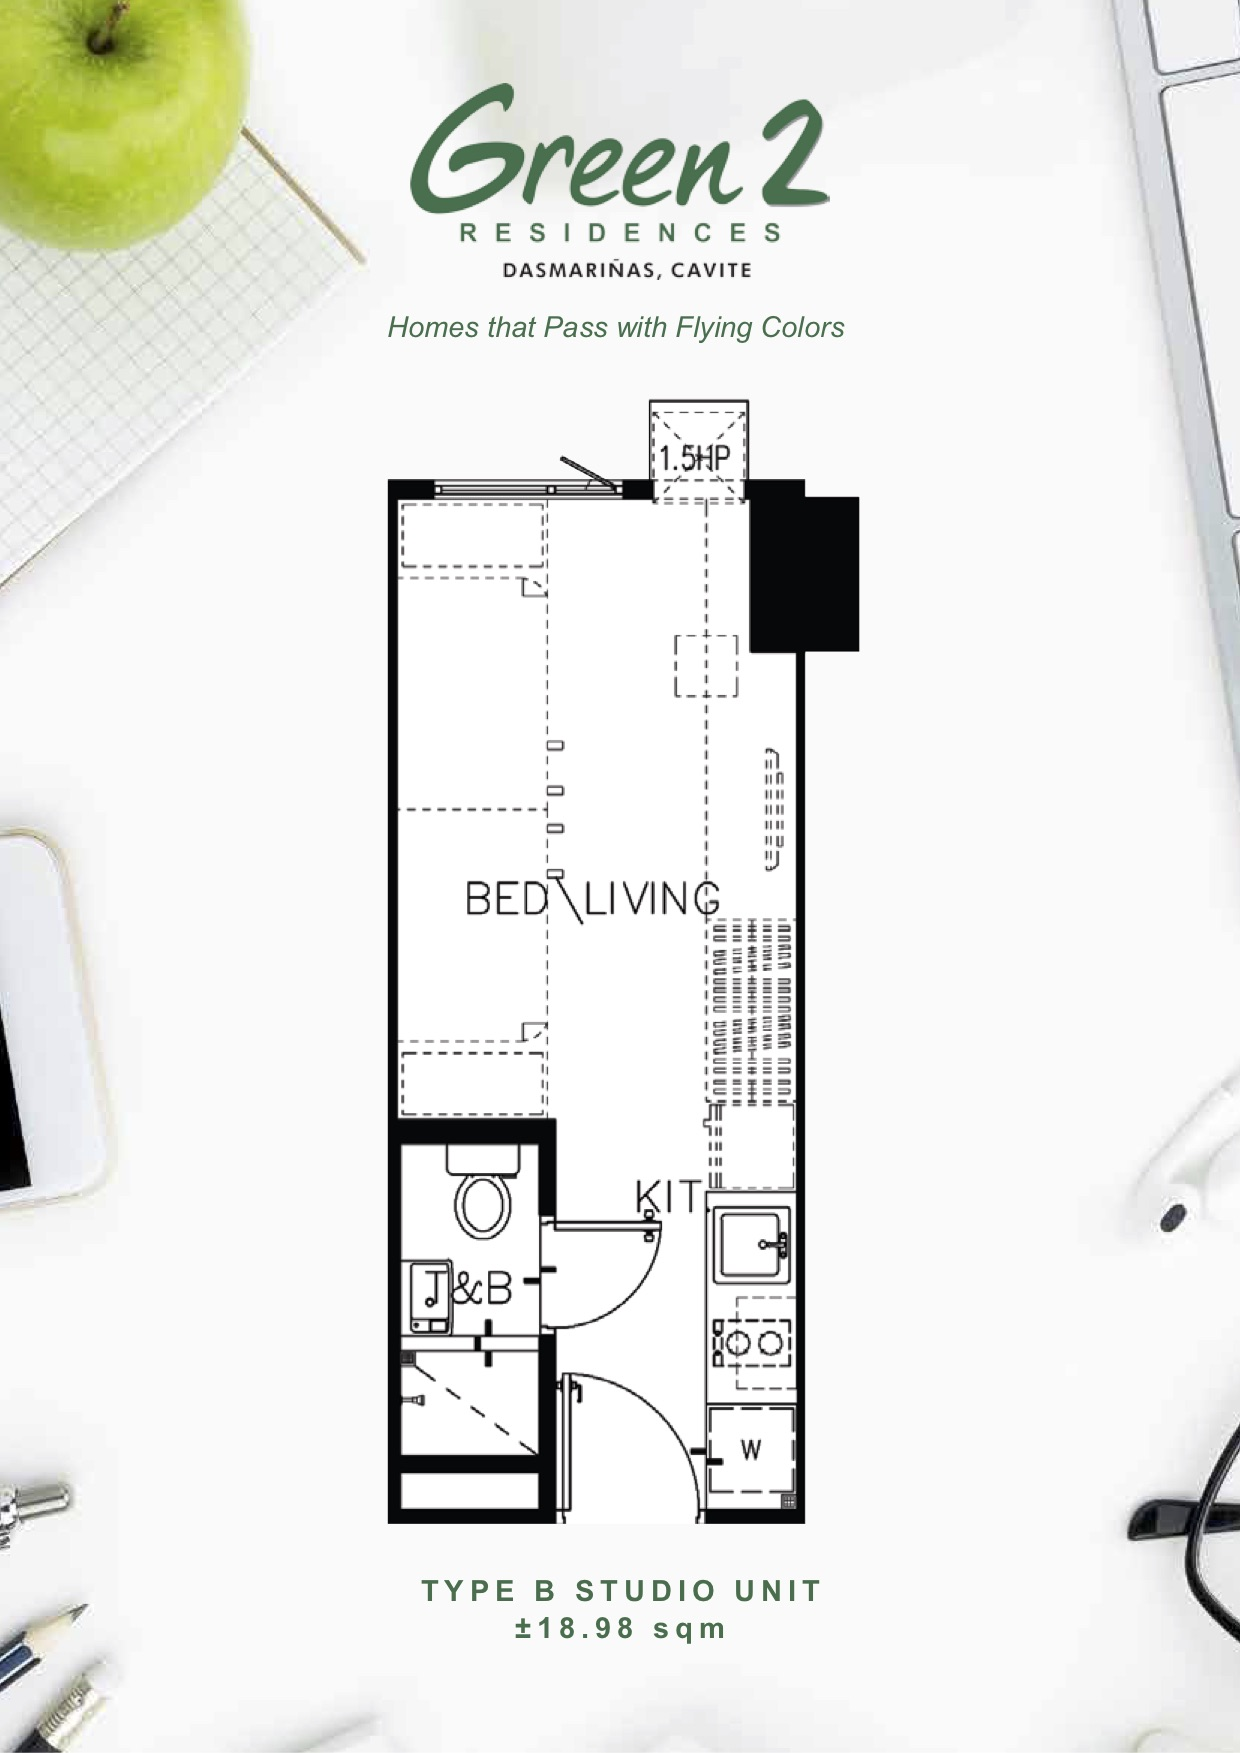 TYPE B STUDIO UNIT ±18.98 sqm